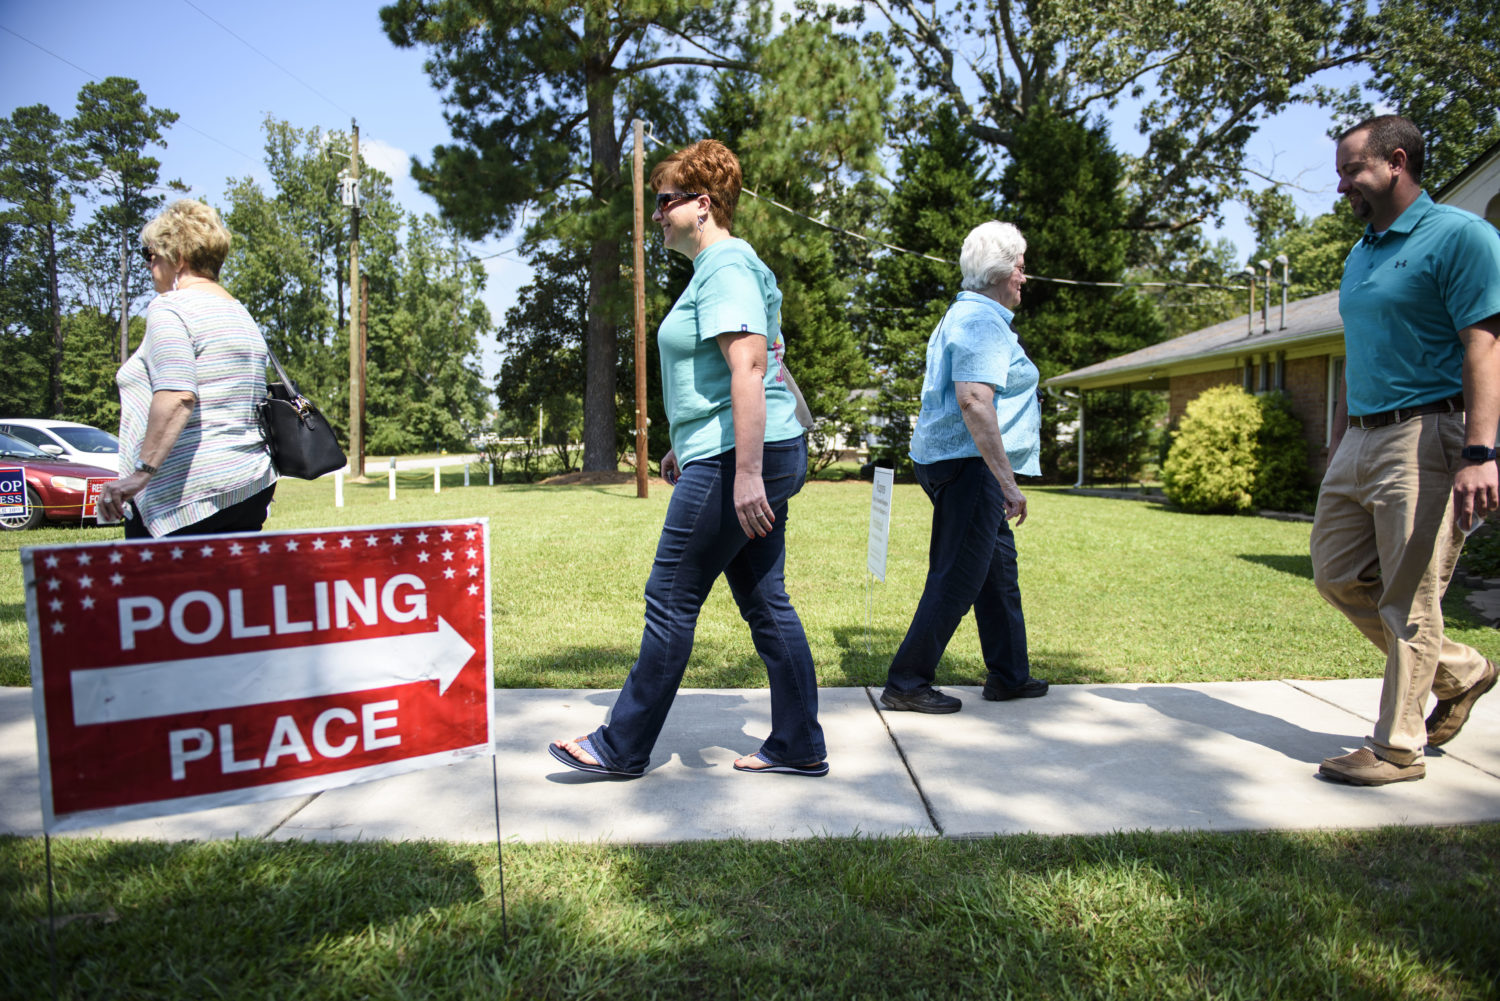 People enter and exit a polling station in Stedman on September 10, 2019, for a special election for the 9th congressional district. Certain guidelines will help voters in all elections. Melissa Sue Gerrits / Carolina Public Press